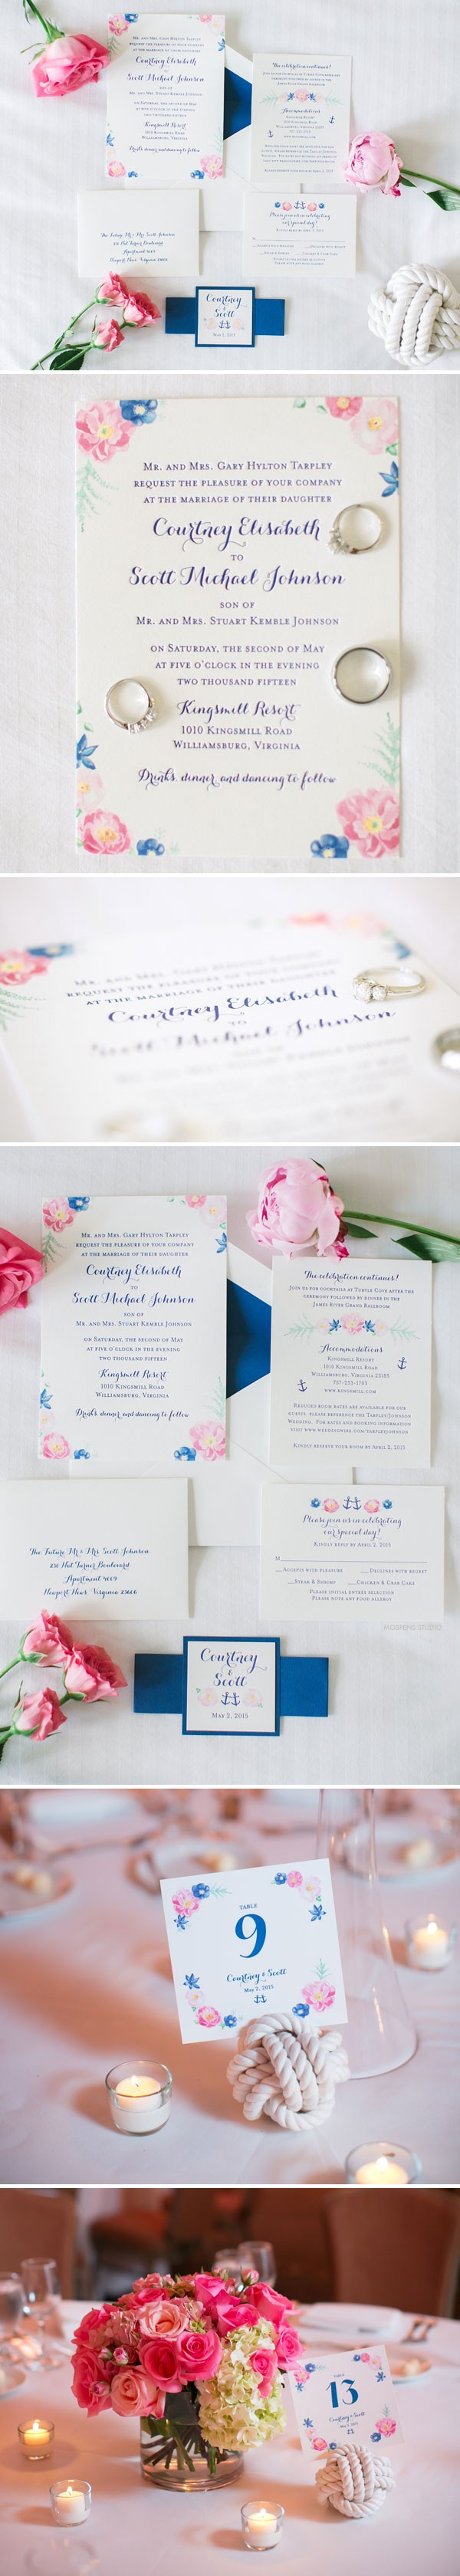 Elegant Floral Wedding Invitations - The custom design features original watercolor flowers and anchors artwork, letterpress printing, handmade custom belt, and envelope liner. www.mospensstudio.com